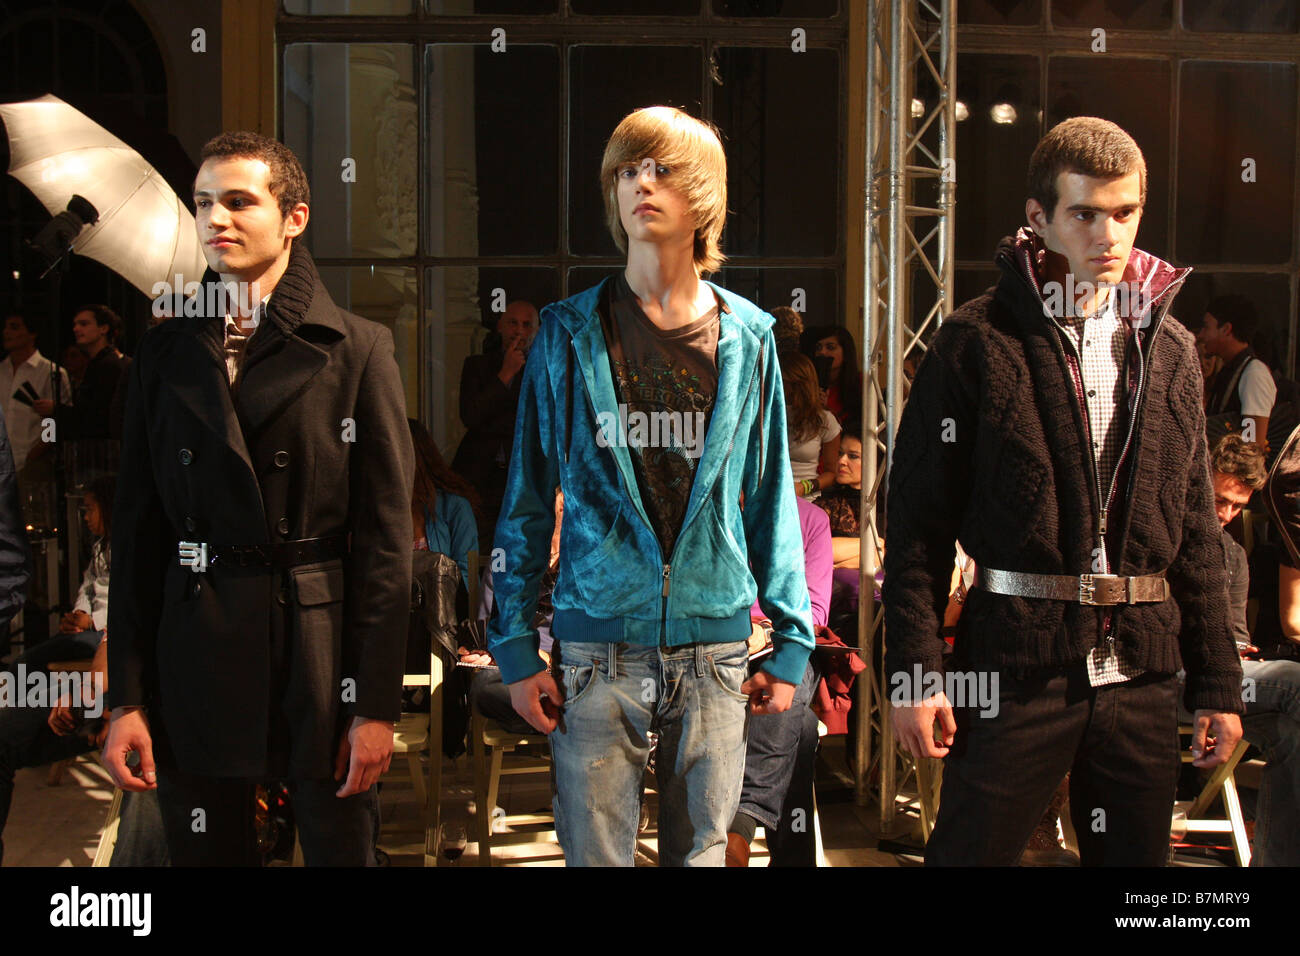 Young models during a fashion show. - Stock Image